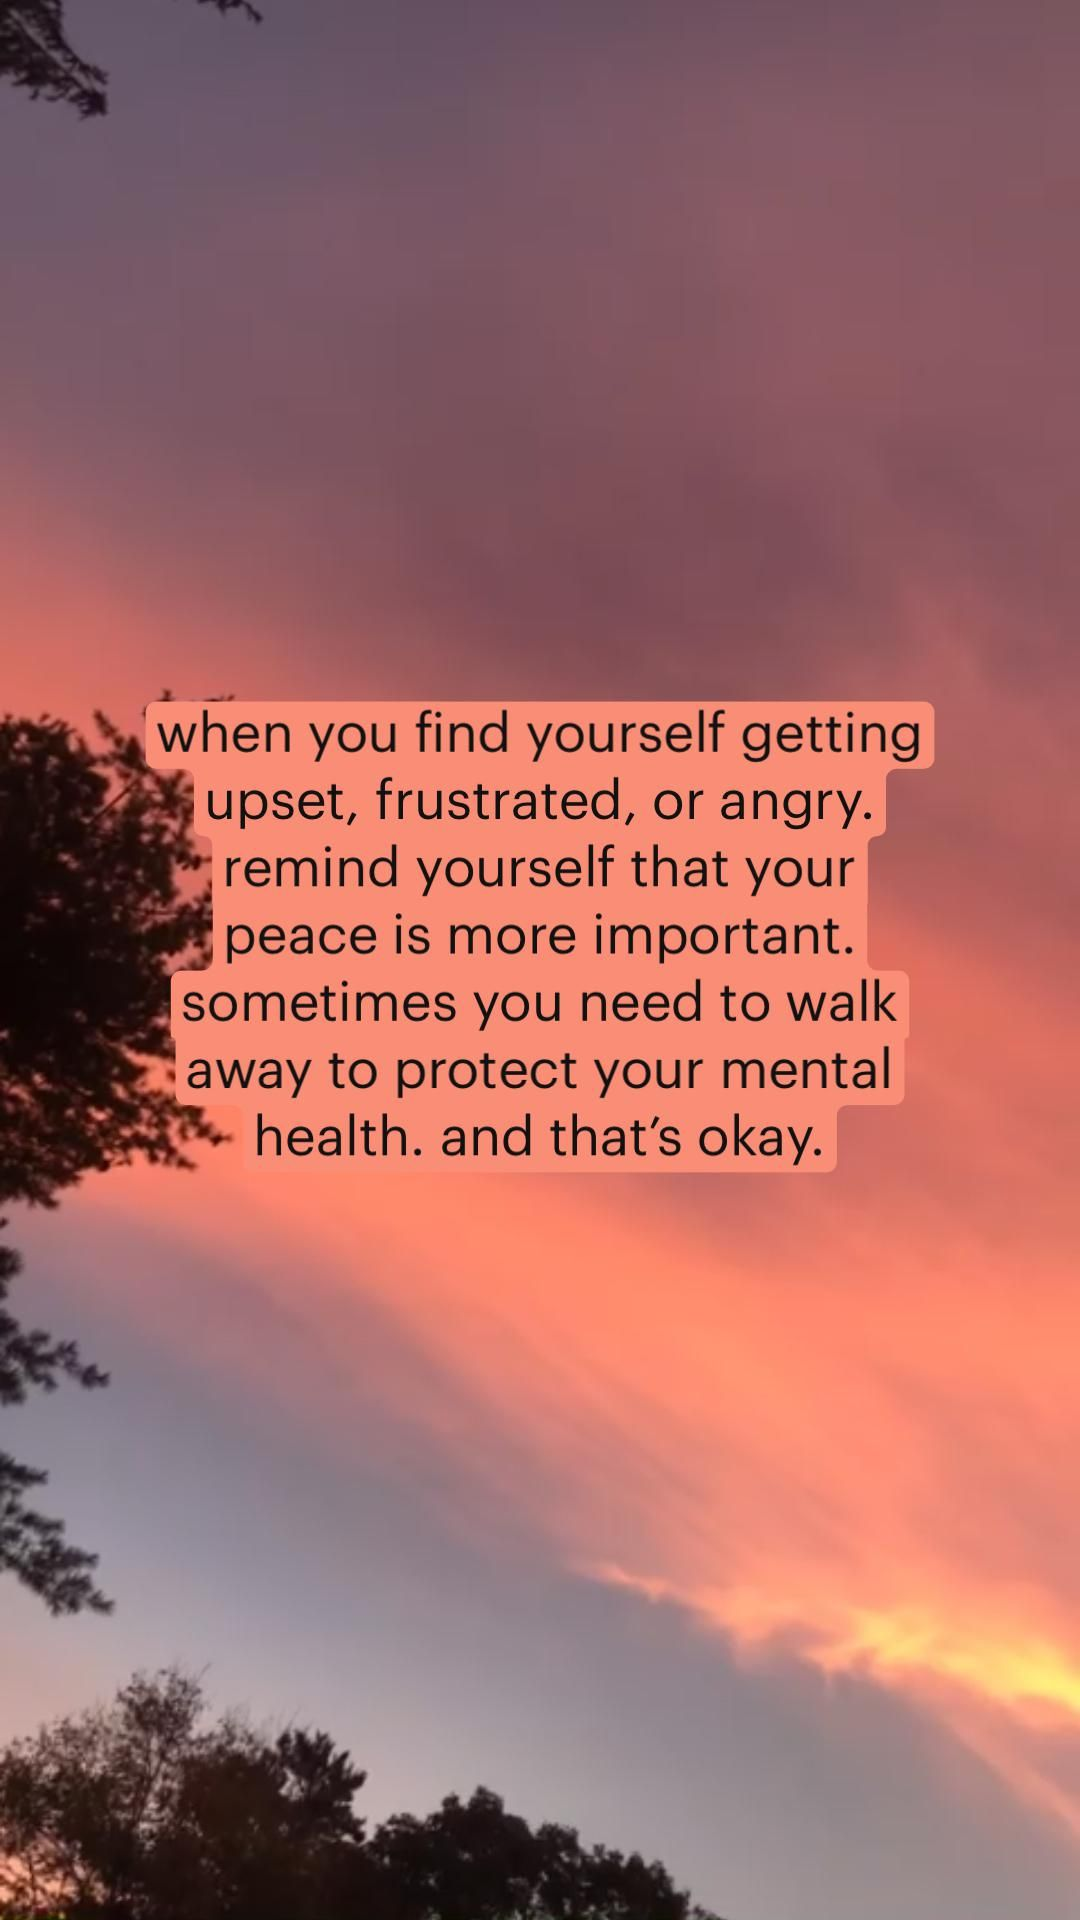 Protect your peace and mind no matter what.